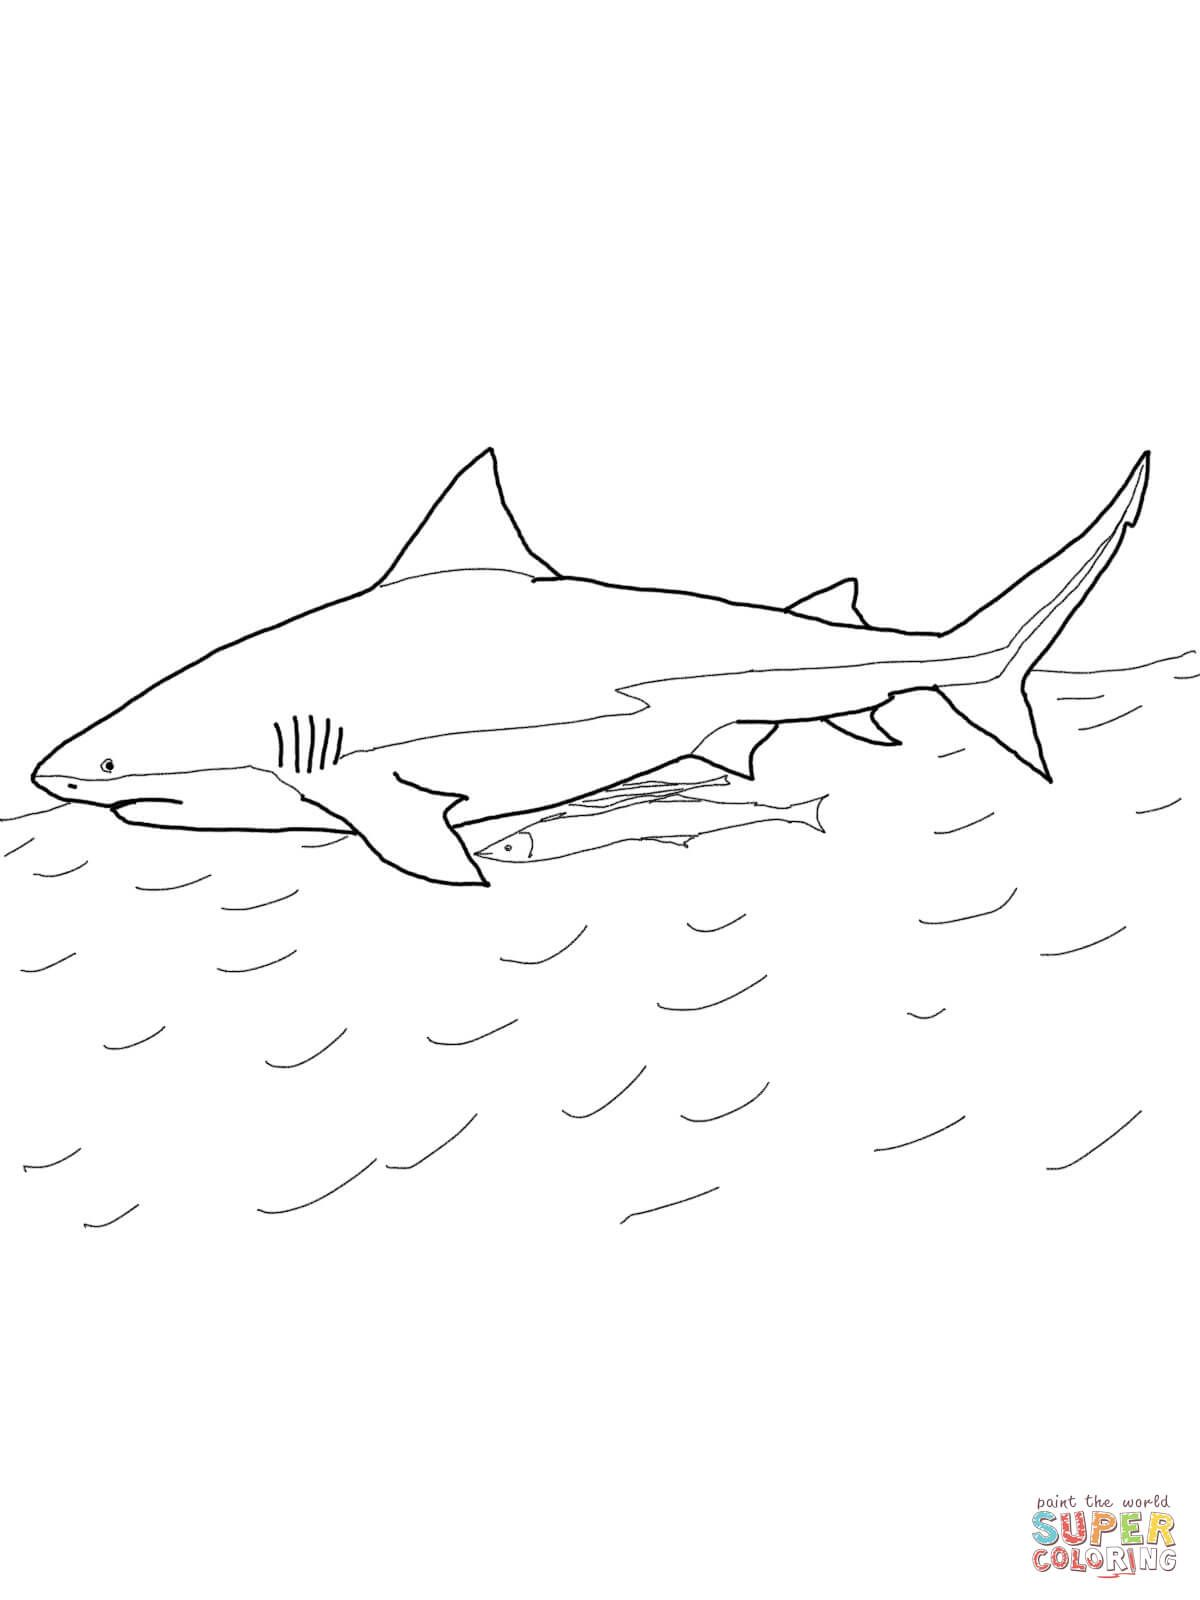 Sharks coloring pages free coloring pages shark coloring pages Shark Mouth Colorting Page Shark Species Coloring Pages Mako Shark Panama City Beach